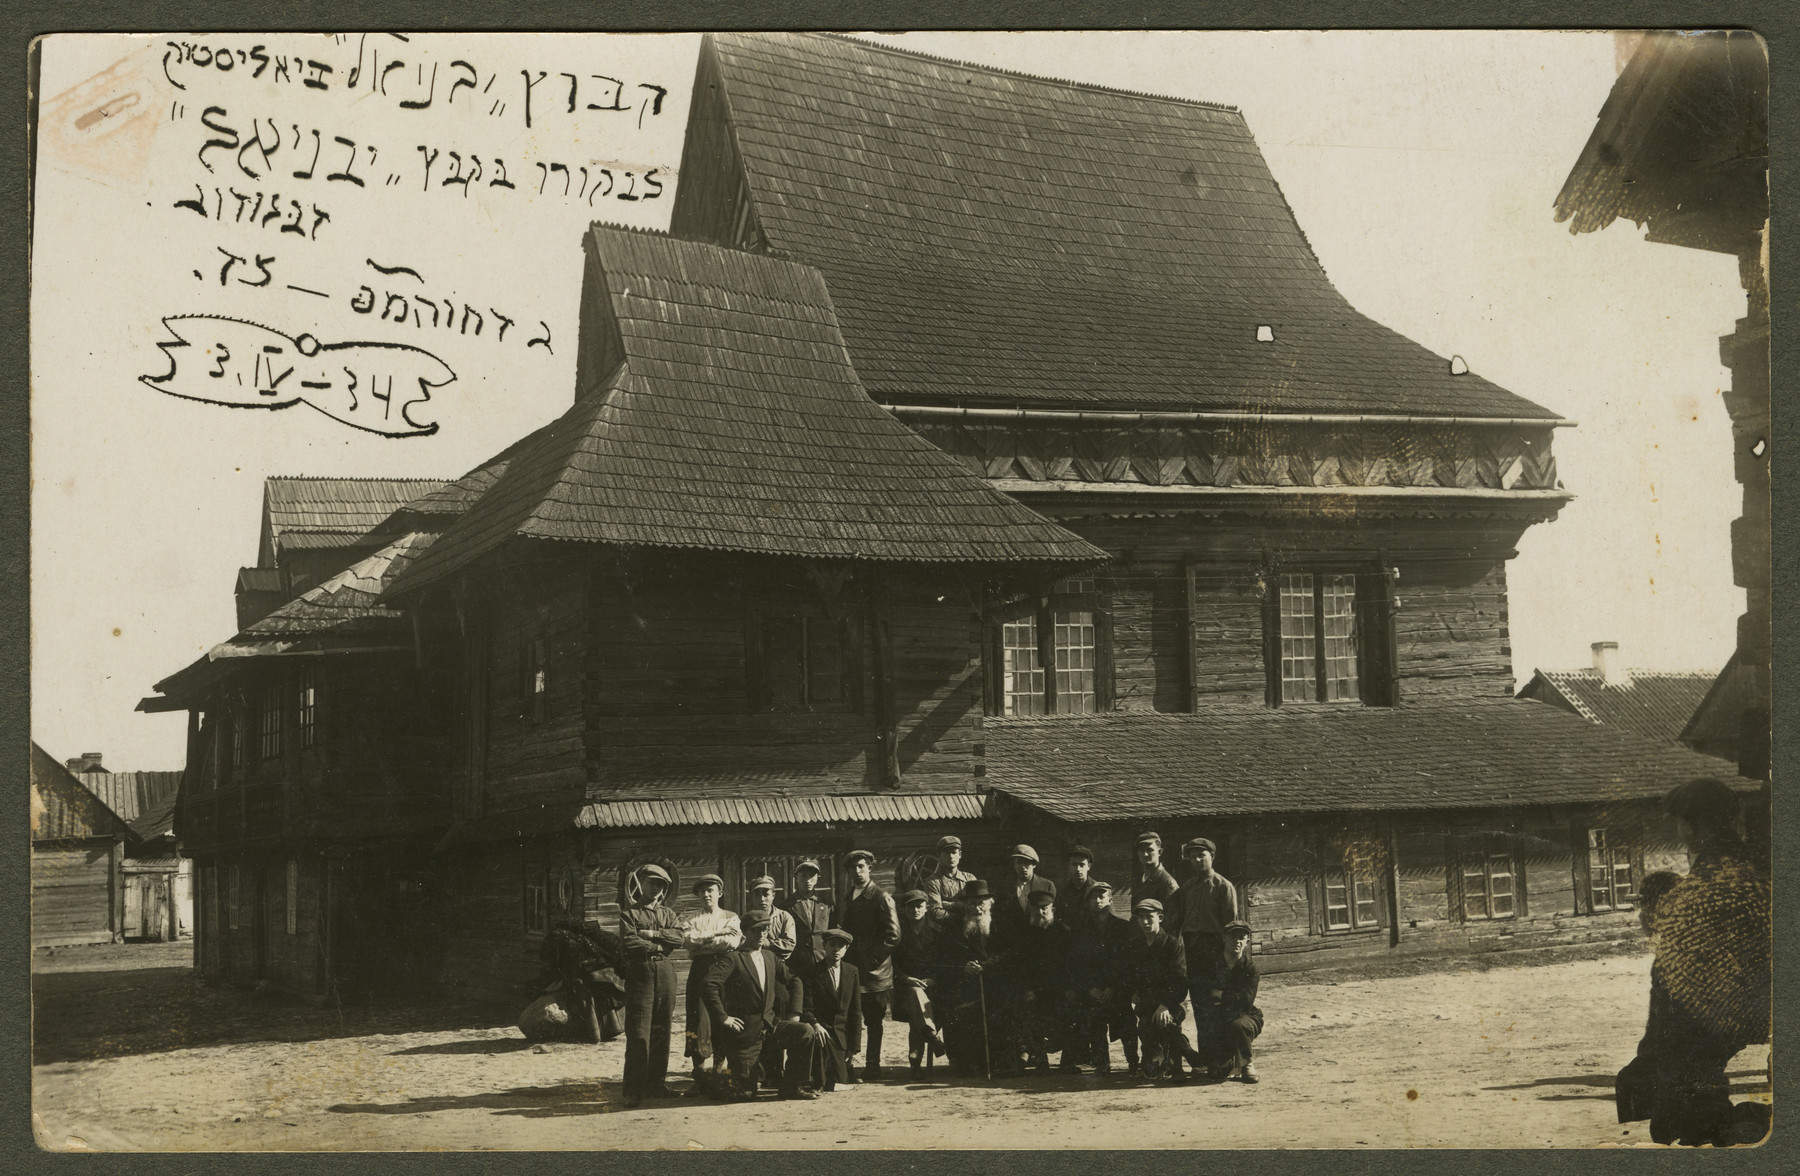 Members of the Hechalutz Mizrachi hachshara Yavniel in Bialystok pose outside a wooden synagogue.